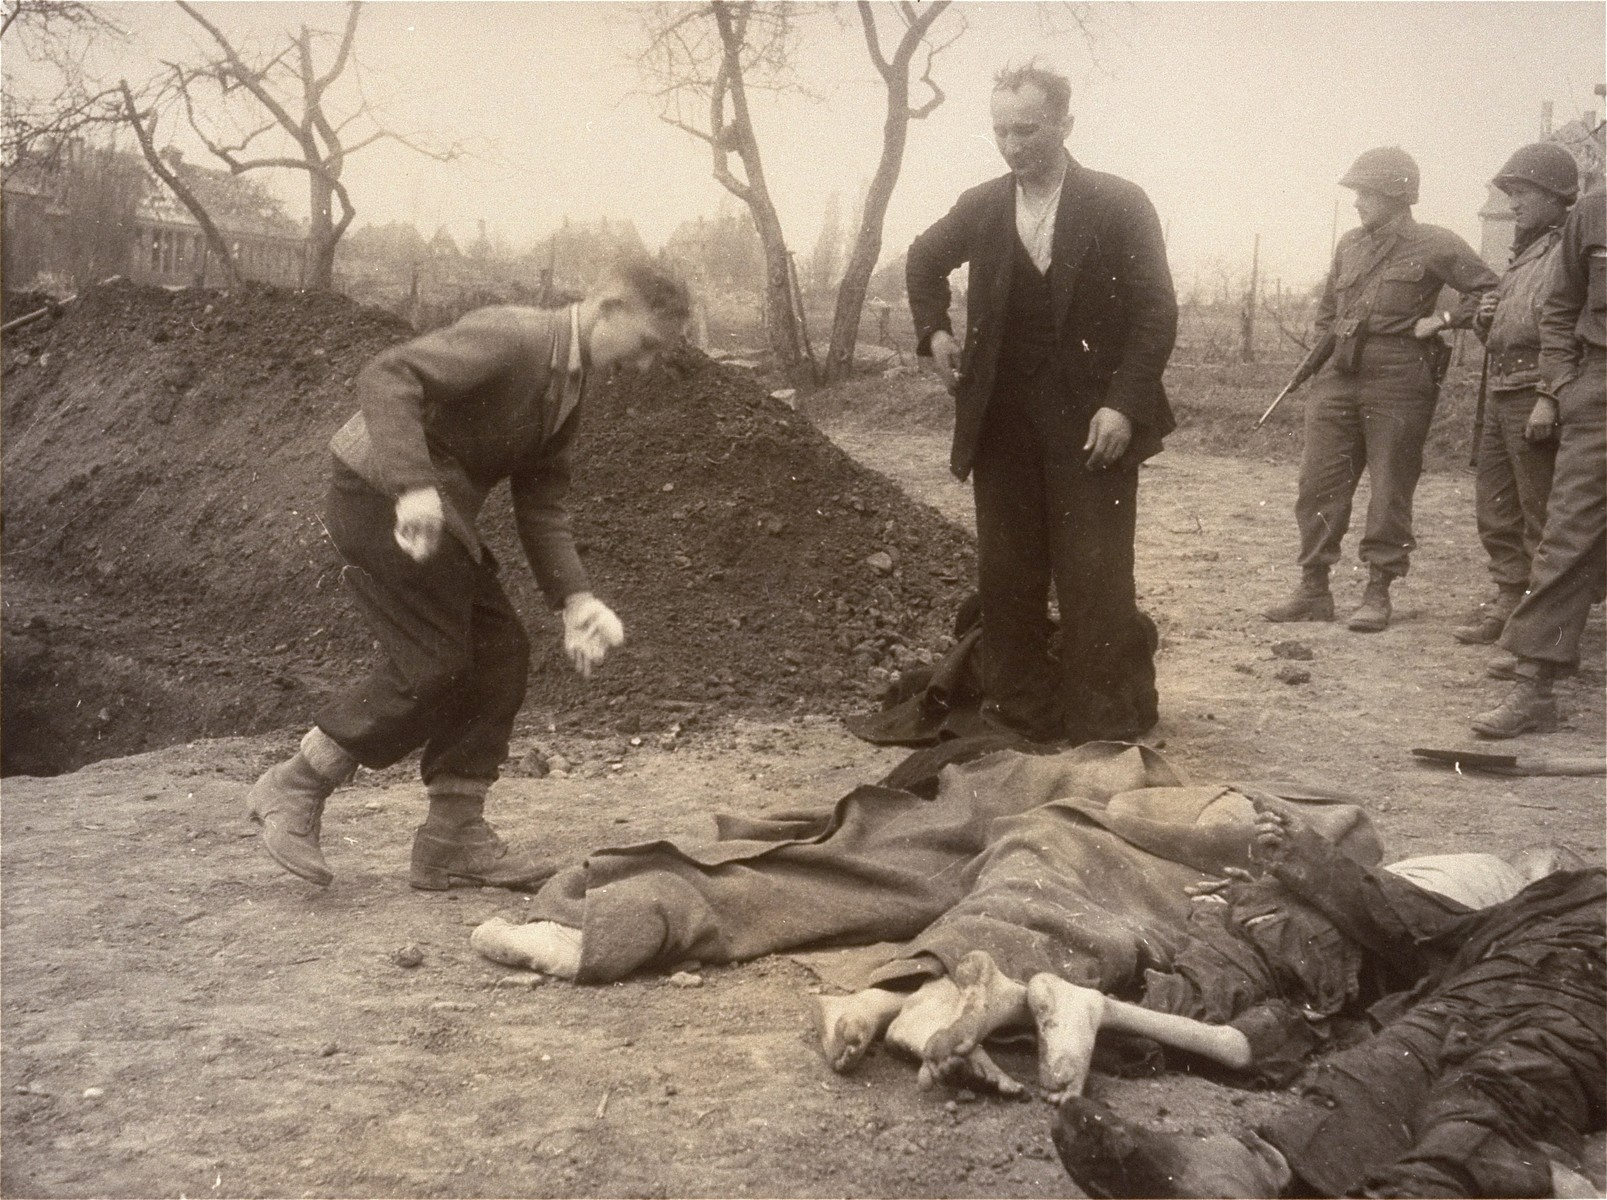 A Polish boy and his father bury the body of the boy's grandmother, who died in the Nordhausen concentration camp.   The young boy on left is Michael Kallaur (about 14 years old) who found the body of his grandmother,  Elizabeth Kallaur, with her head severed off.  His father Walter Kallaur stands over her.  The coat next to him was given by the army photographer to cover her when she was just found.   These survivors would not allow the Germans to touch their dead, even after Colonel D.B. Hardin ordered the civilian population of the town of Nordhausen to bury the corpses of prisoners found in the Nordhausen concentration camp.